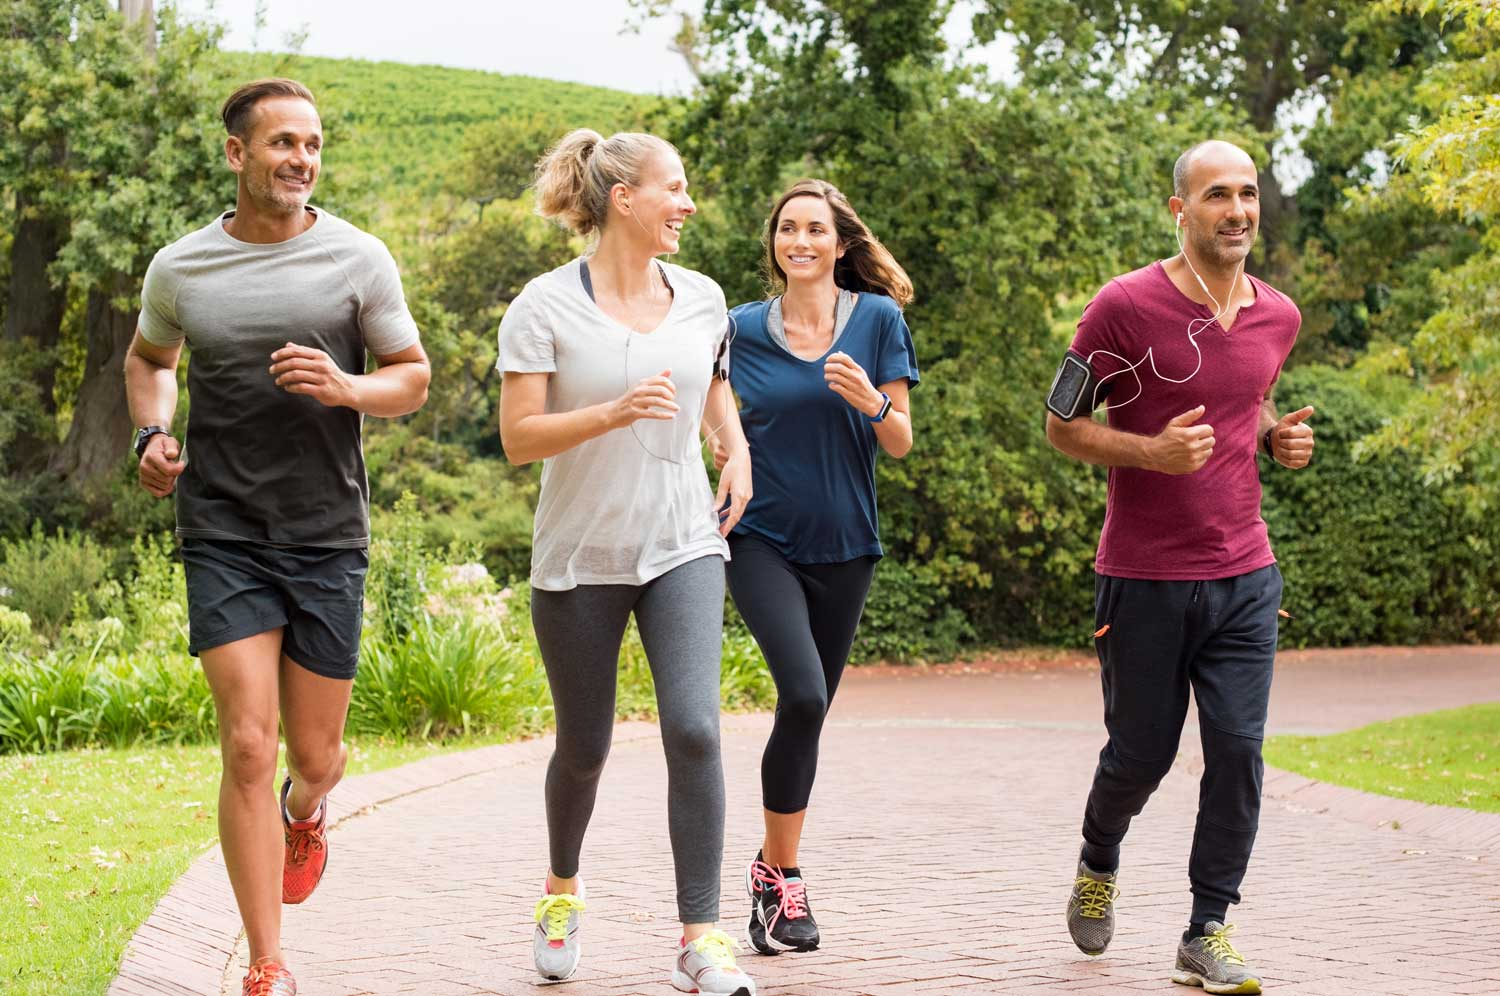 Group of runners fit and healthy